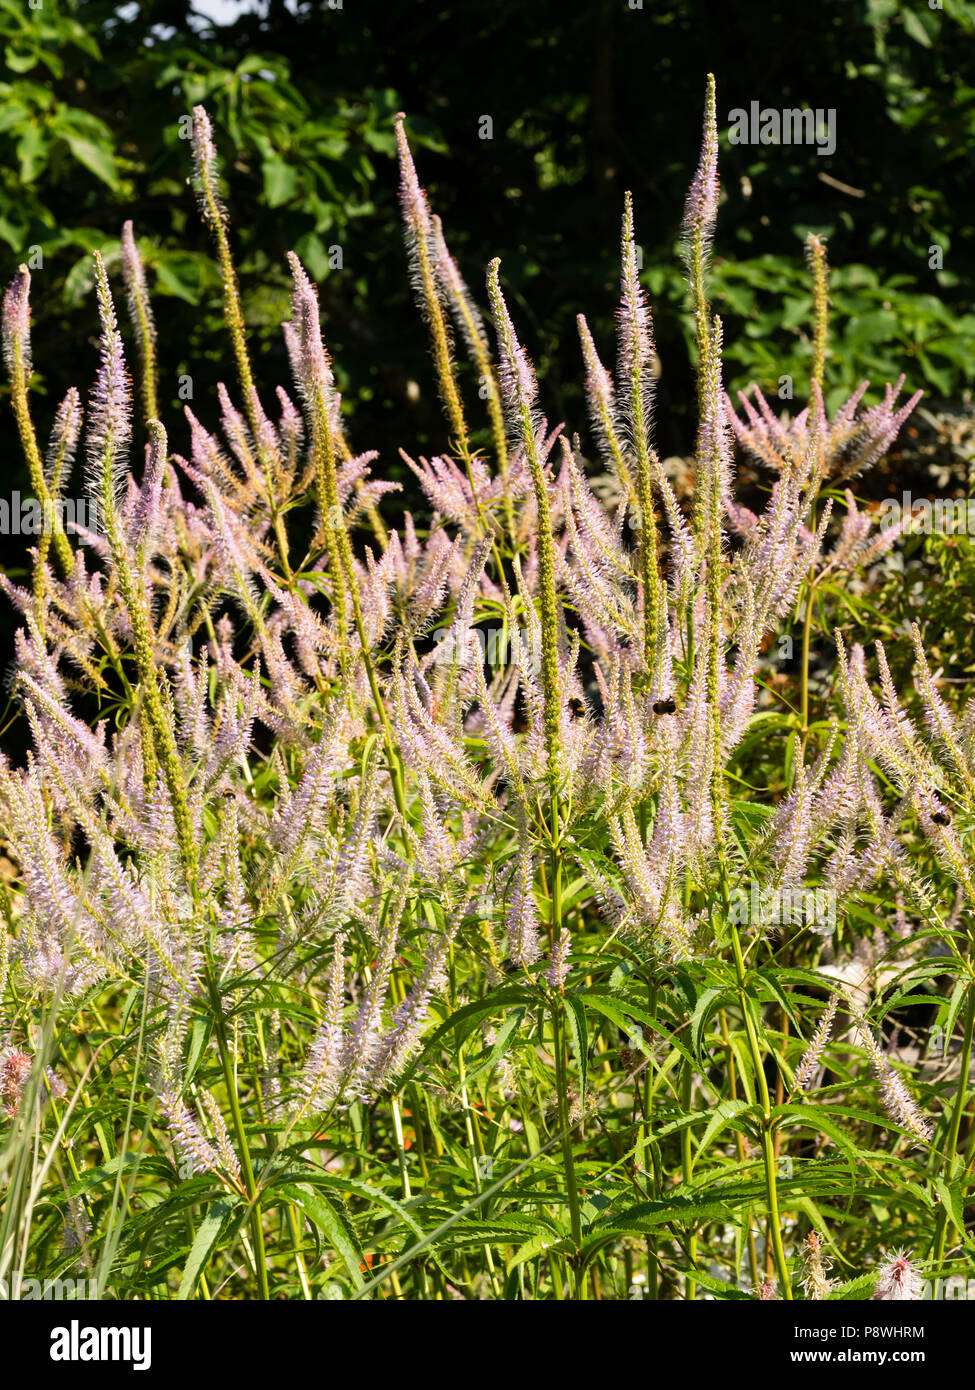 Pale Lavender Flowers In The Branching Spikes Of The Tall Summer